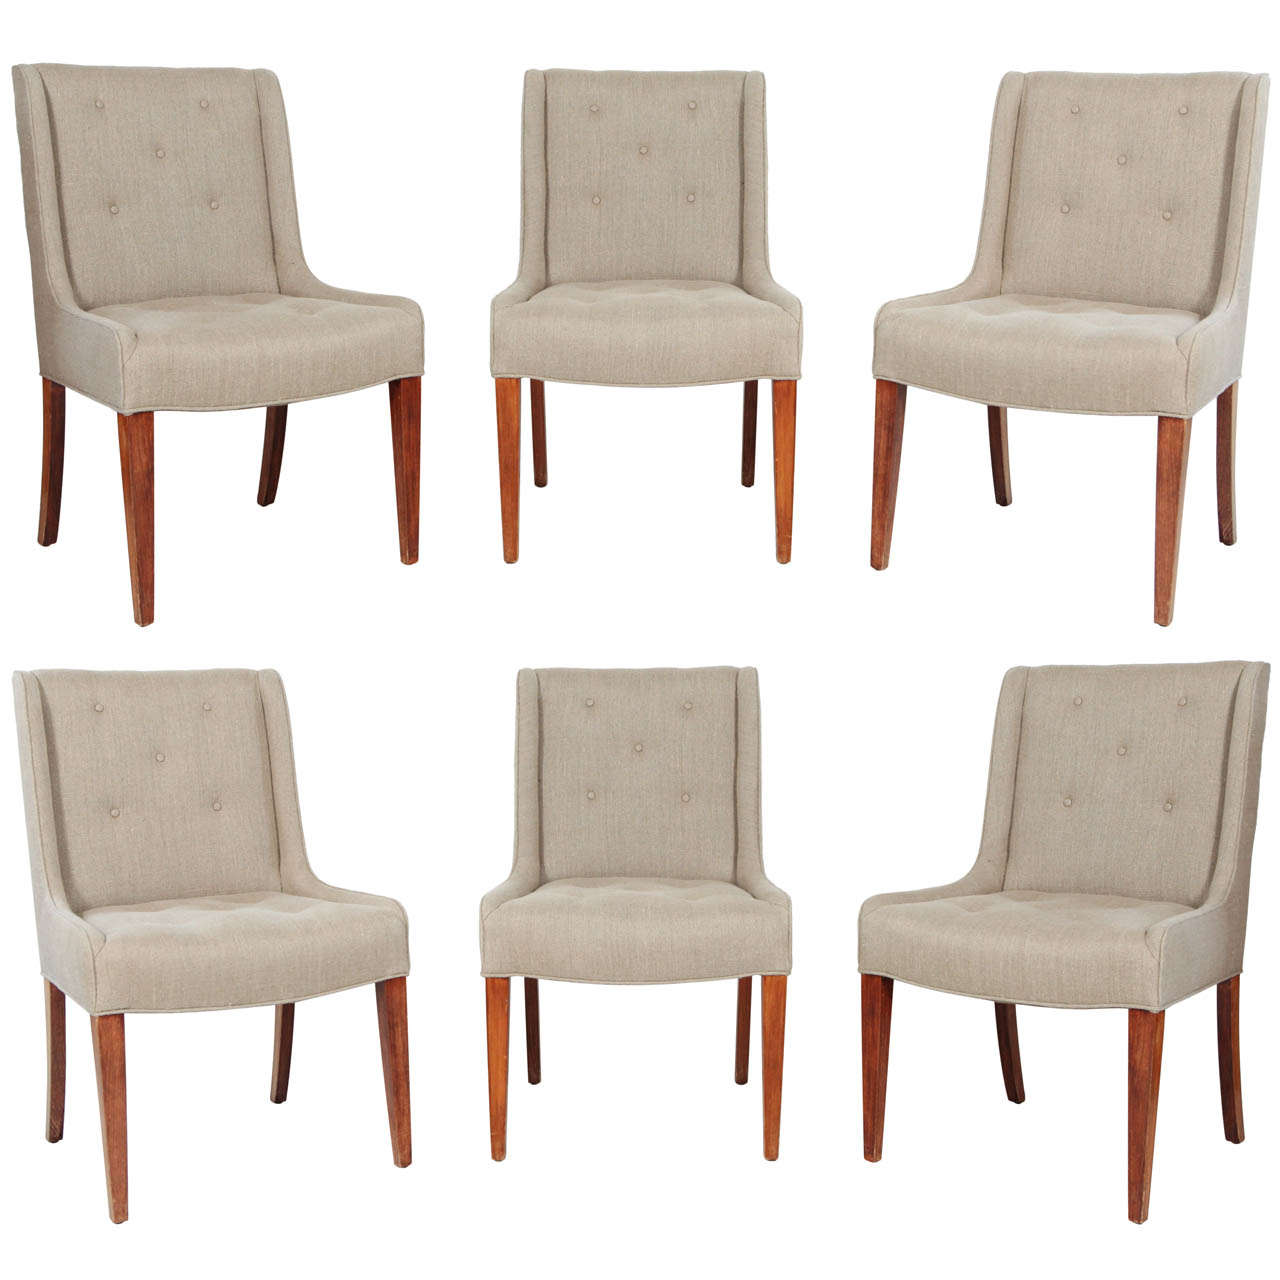 Linen Tufted Dining Chairs Set Of Six Tufted Dining Chairs In Hemp Linen At 1stdibs